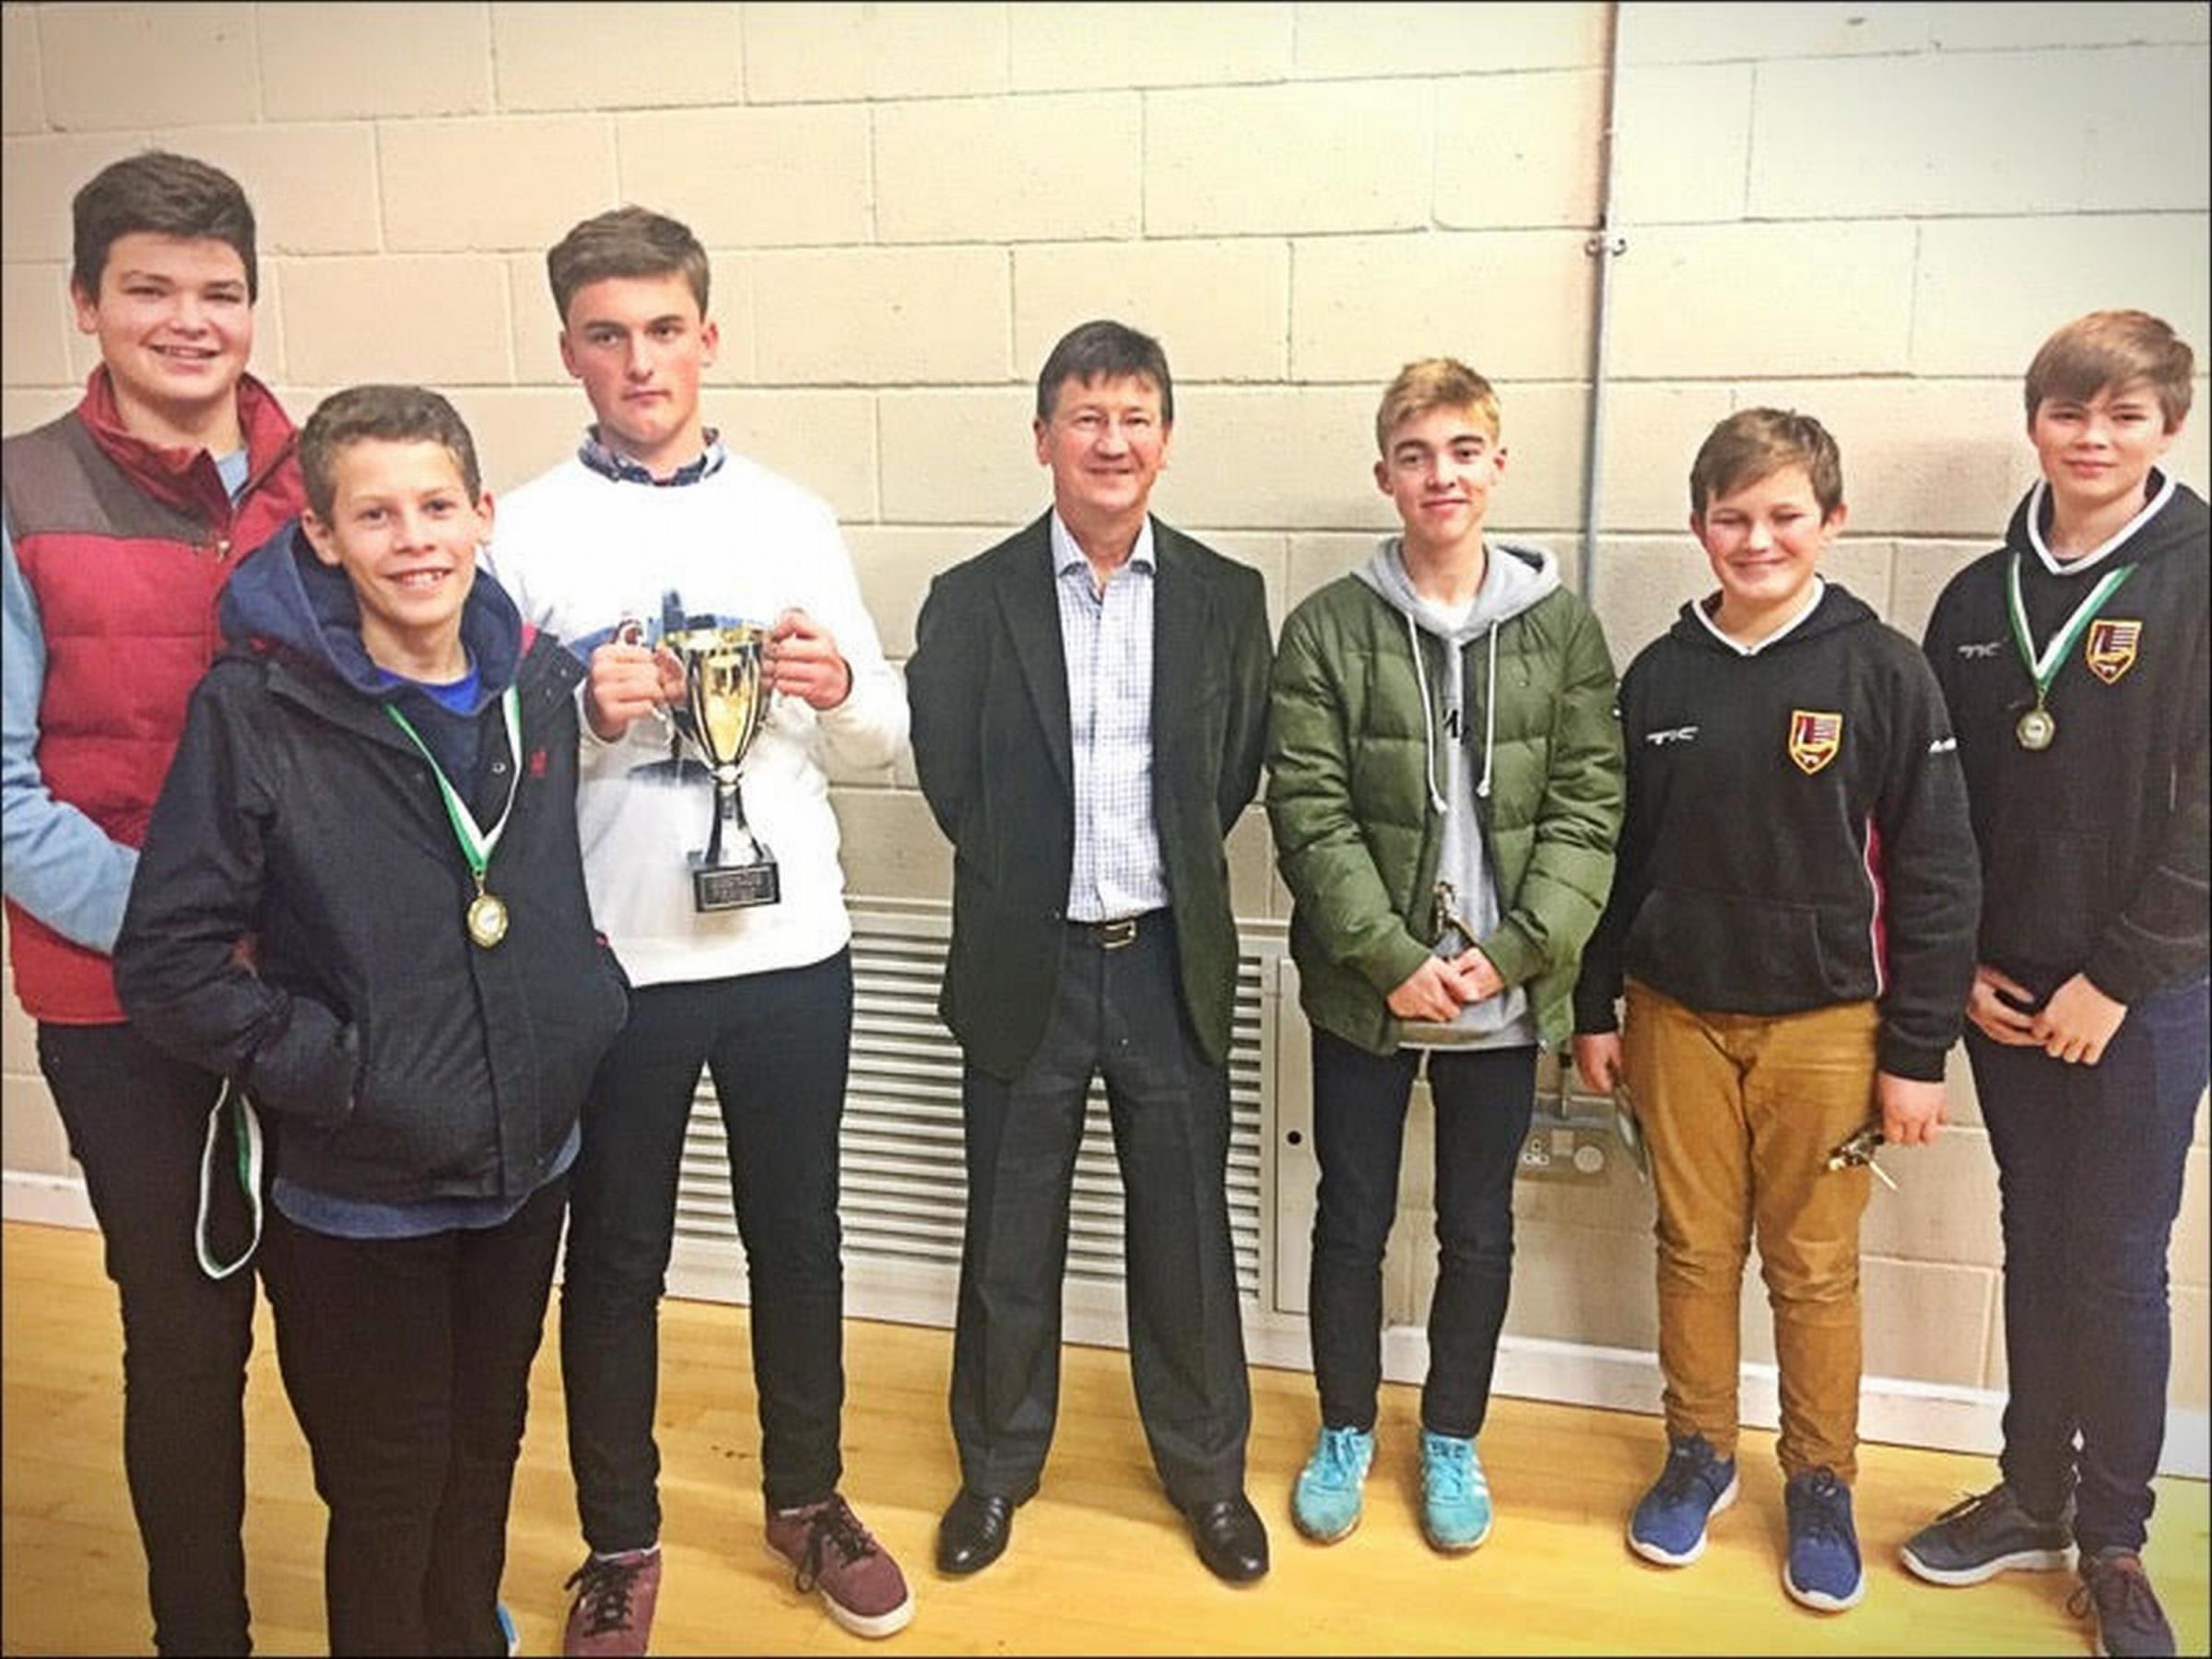 South Wilts juniors scoop awards at Wiltshire Youth Cricket League presentations at Calne CC.